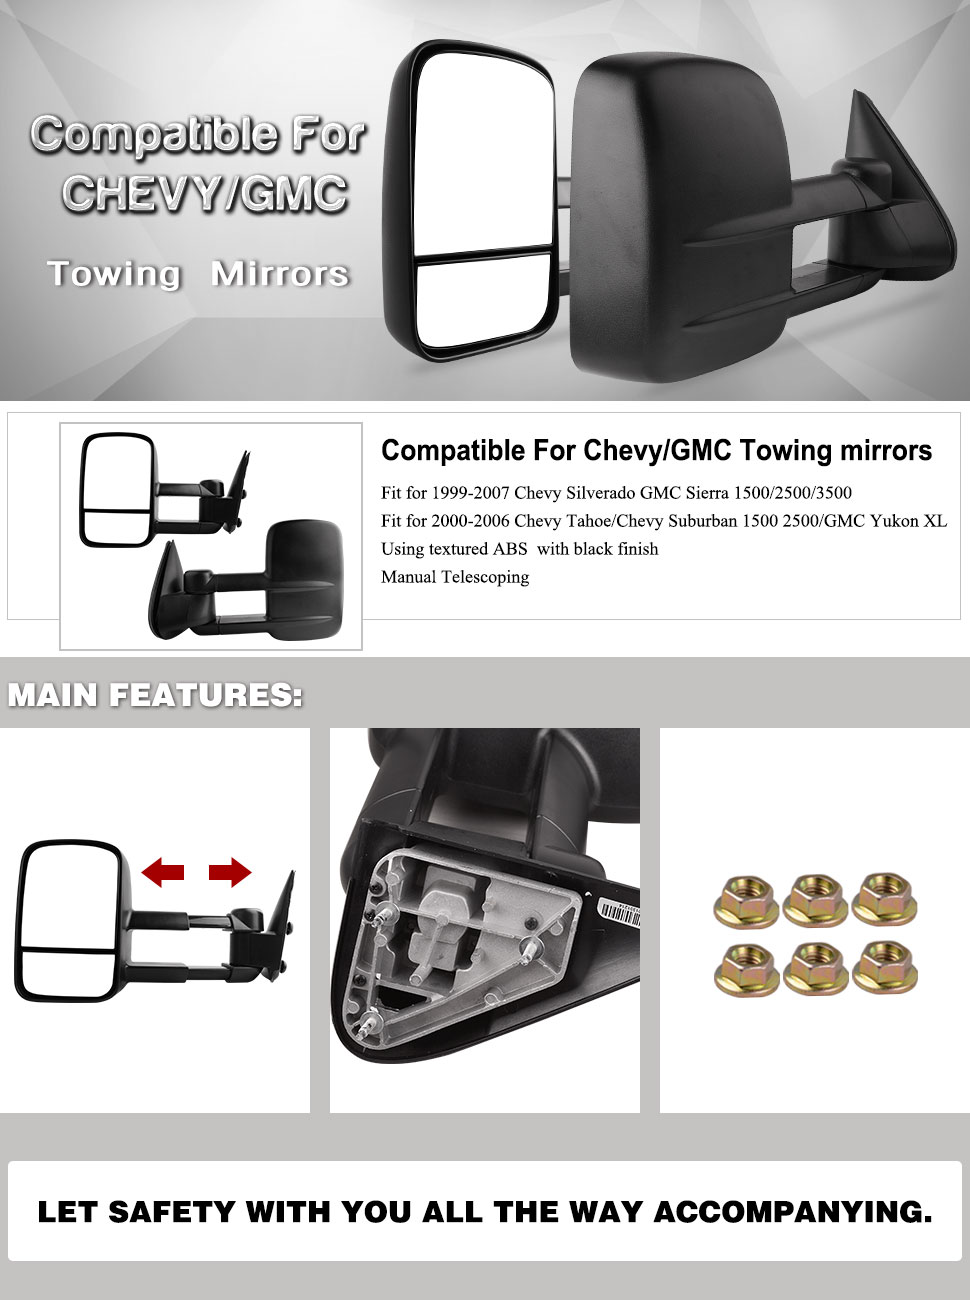 Yitamotor Towing Mirrors For Chevy Gmc Manual No Heated 2007 Silverado Trailer Ke Wiring Diagram Tow 99 06 Sierra Truck